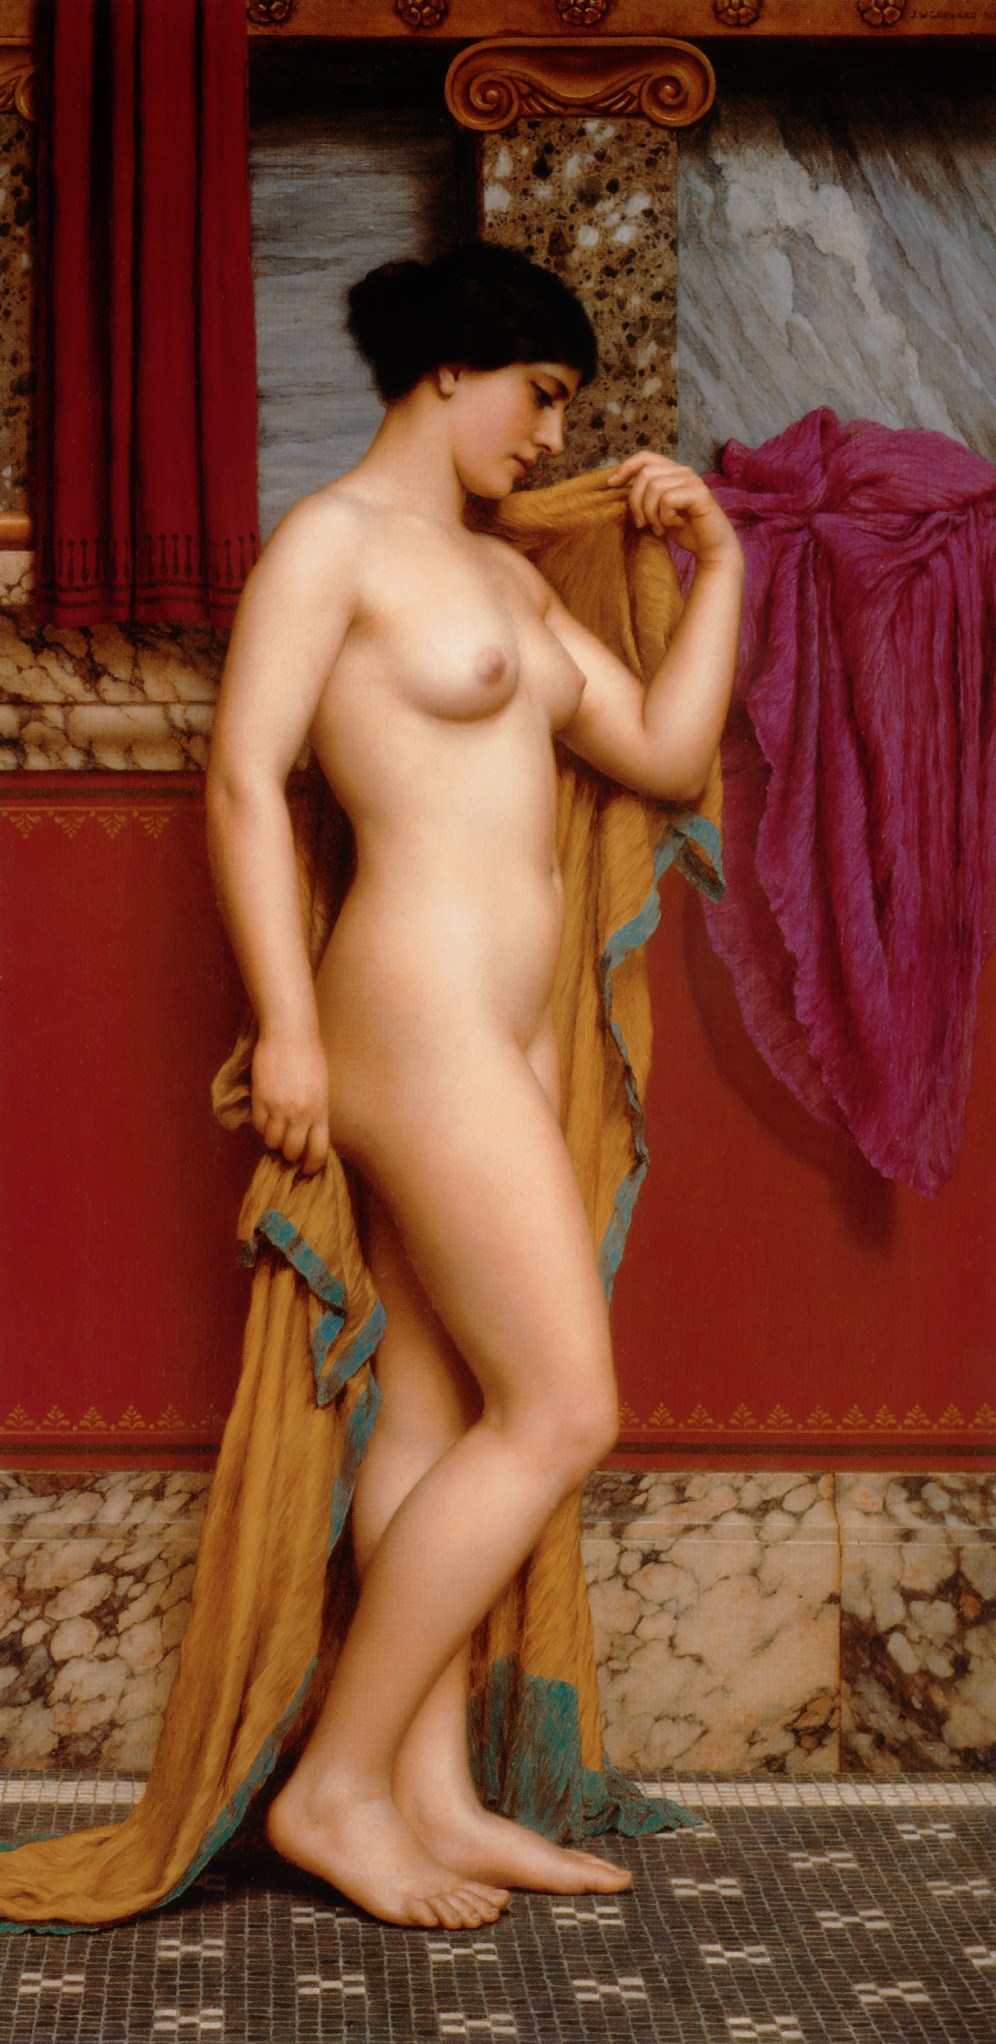 Godward_In_the_Tepidarium_1913